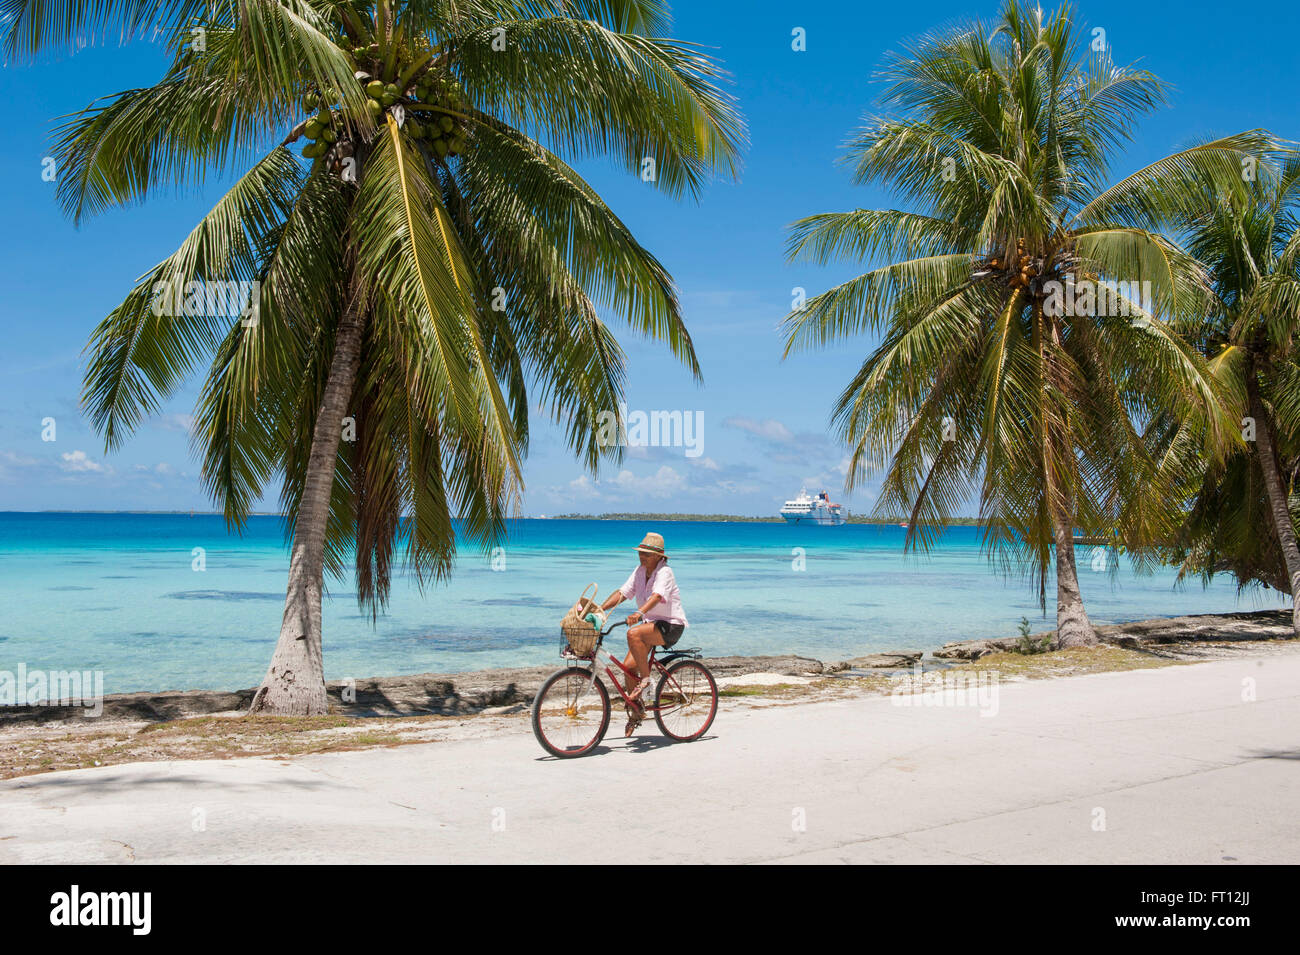 Man riding his bicycle along a road with palm trees, expedition cruise ship MS Hanseatic Hapag-Lloyd Cruises at - Stock Image